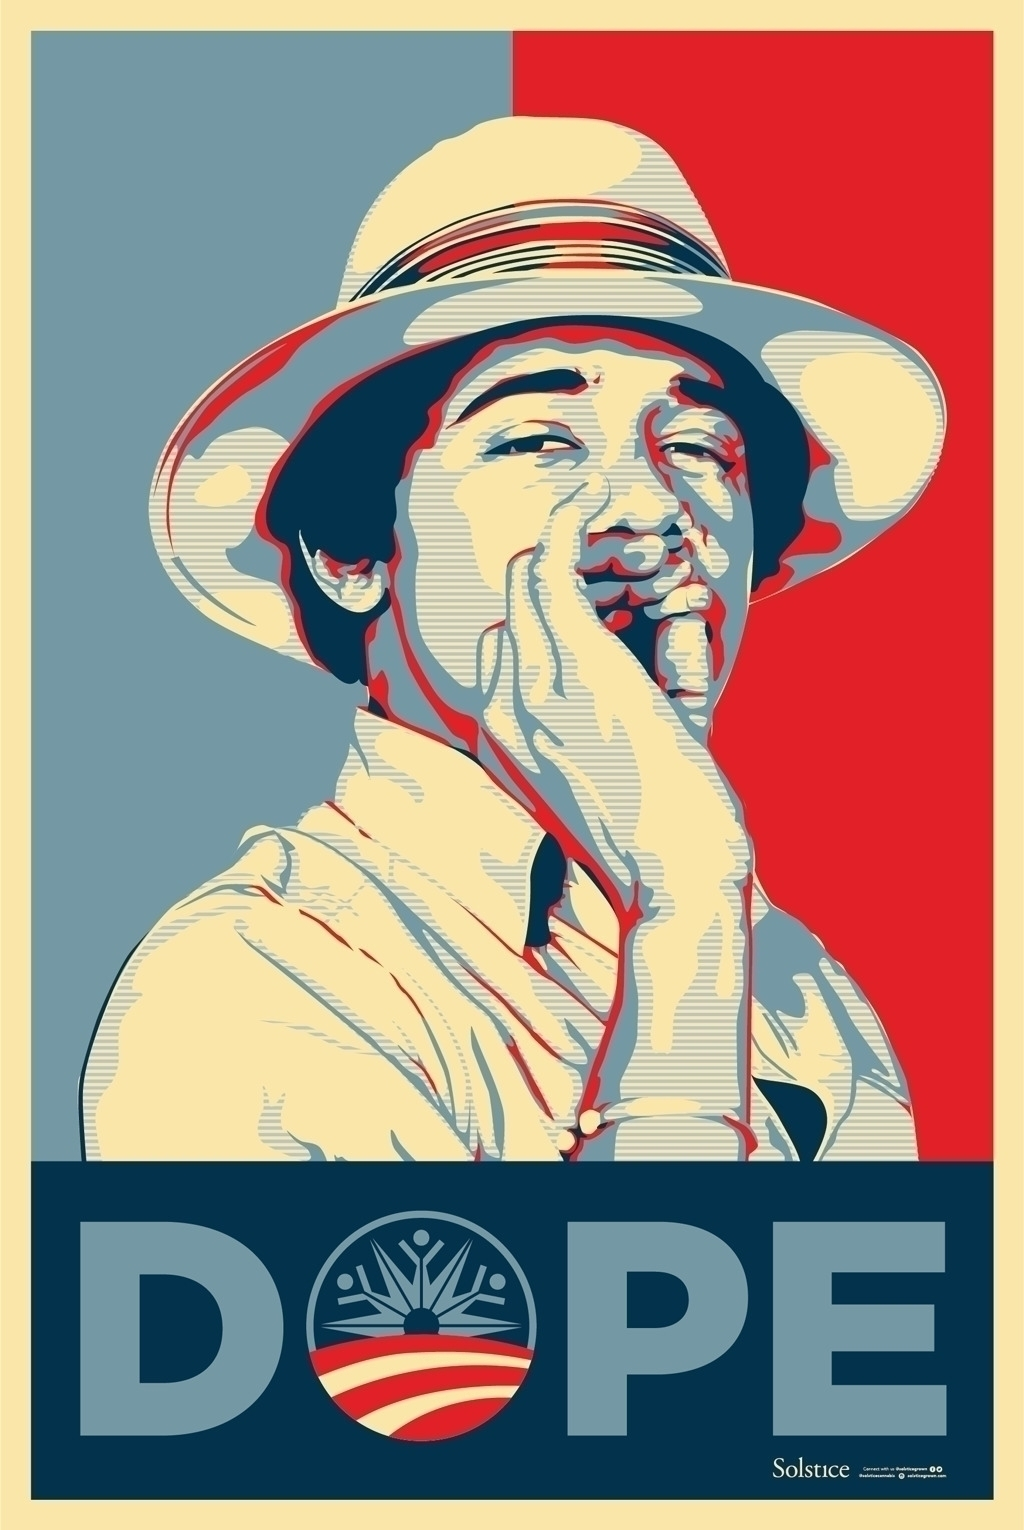 Farewell, Obama. cannabis solst - solsticegrown | ello